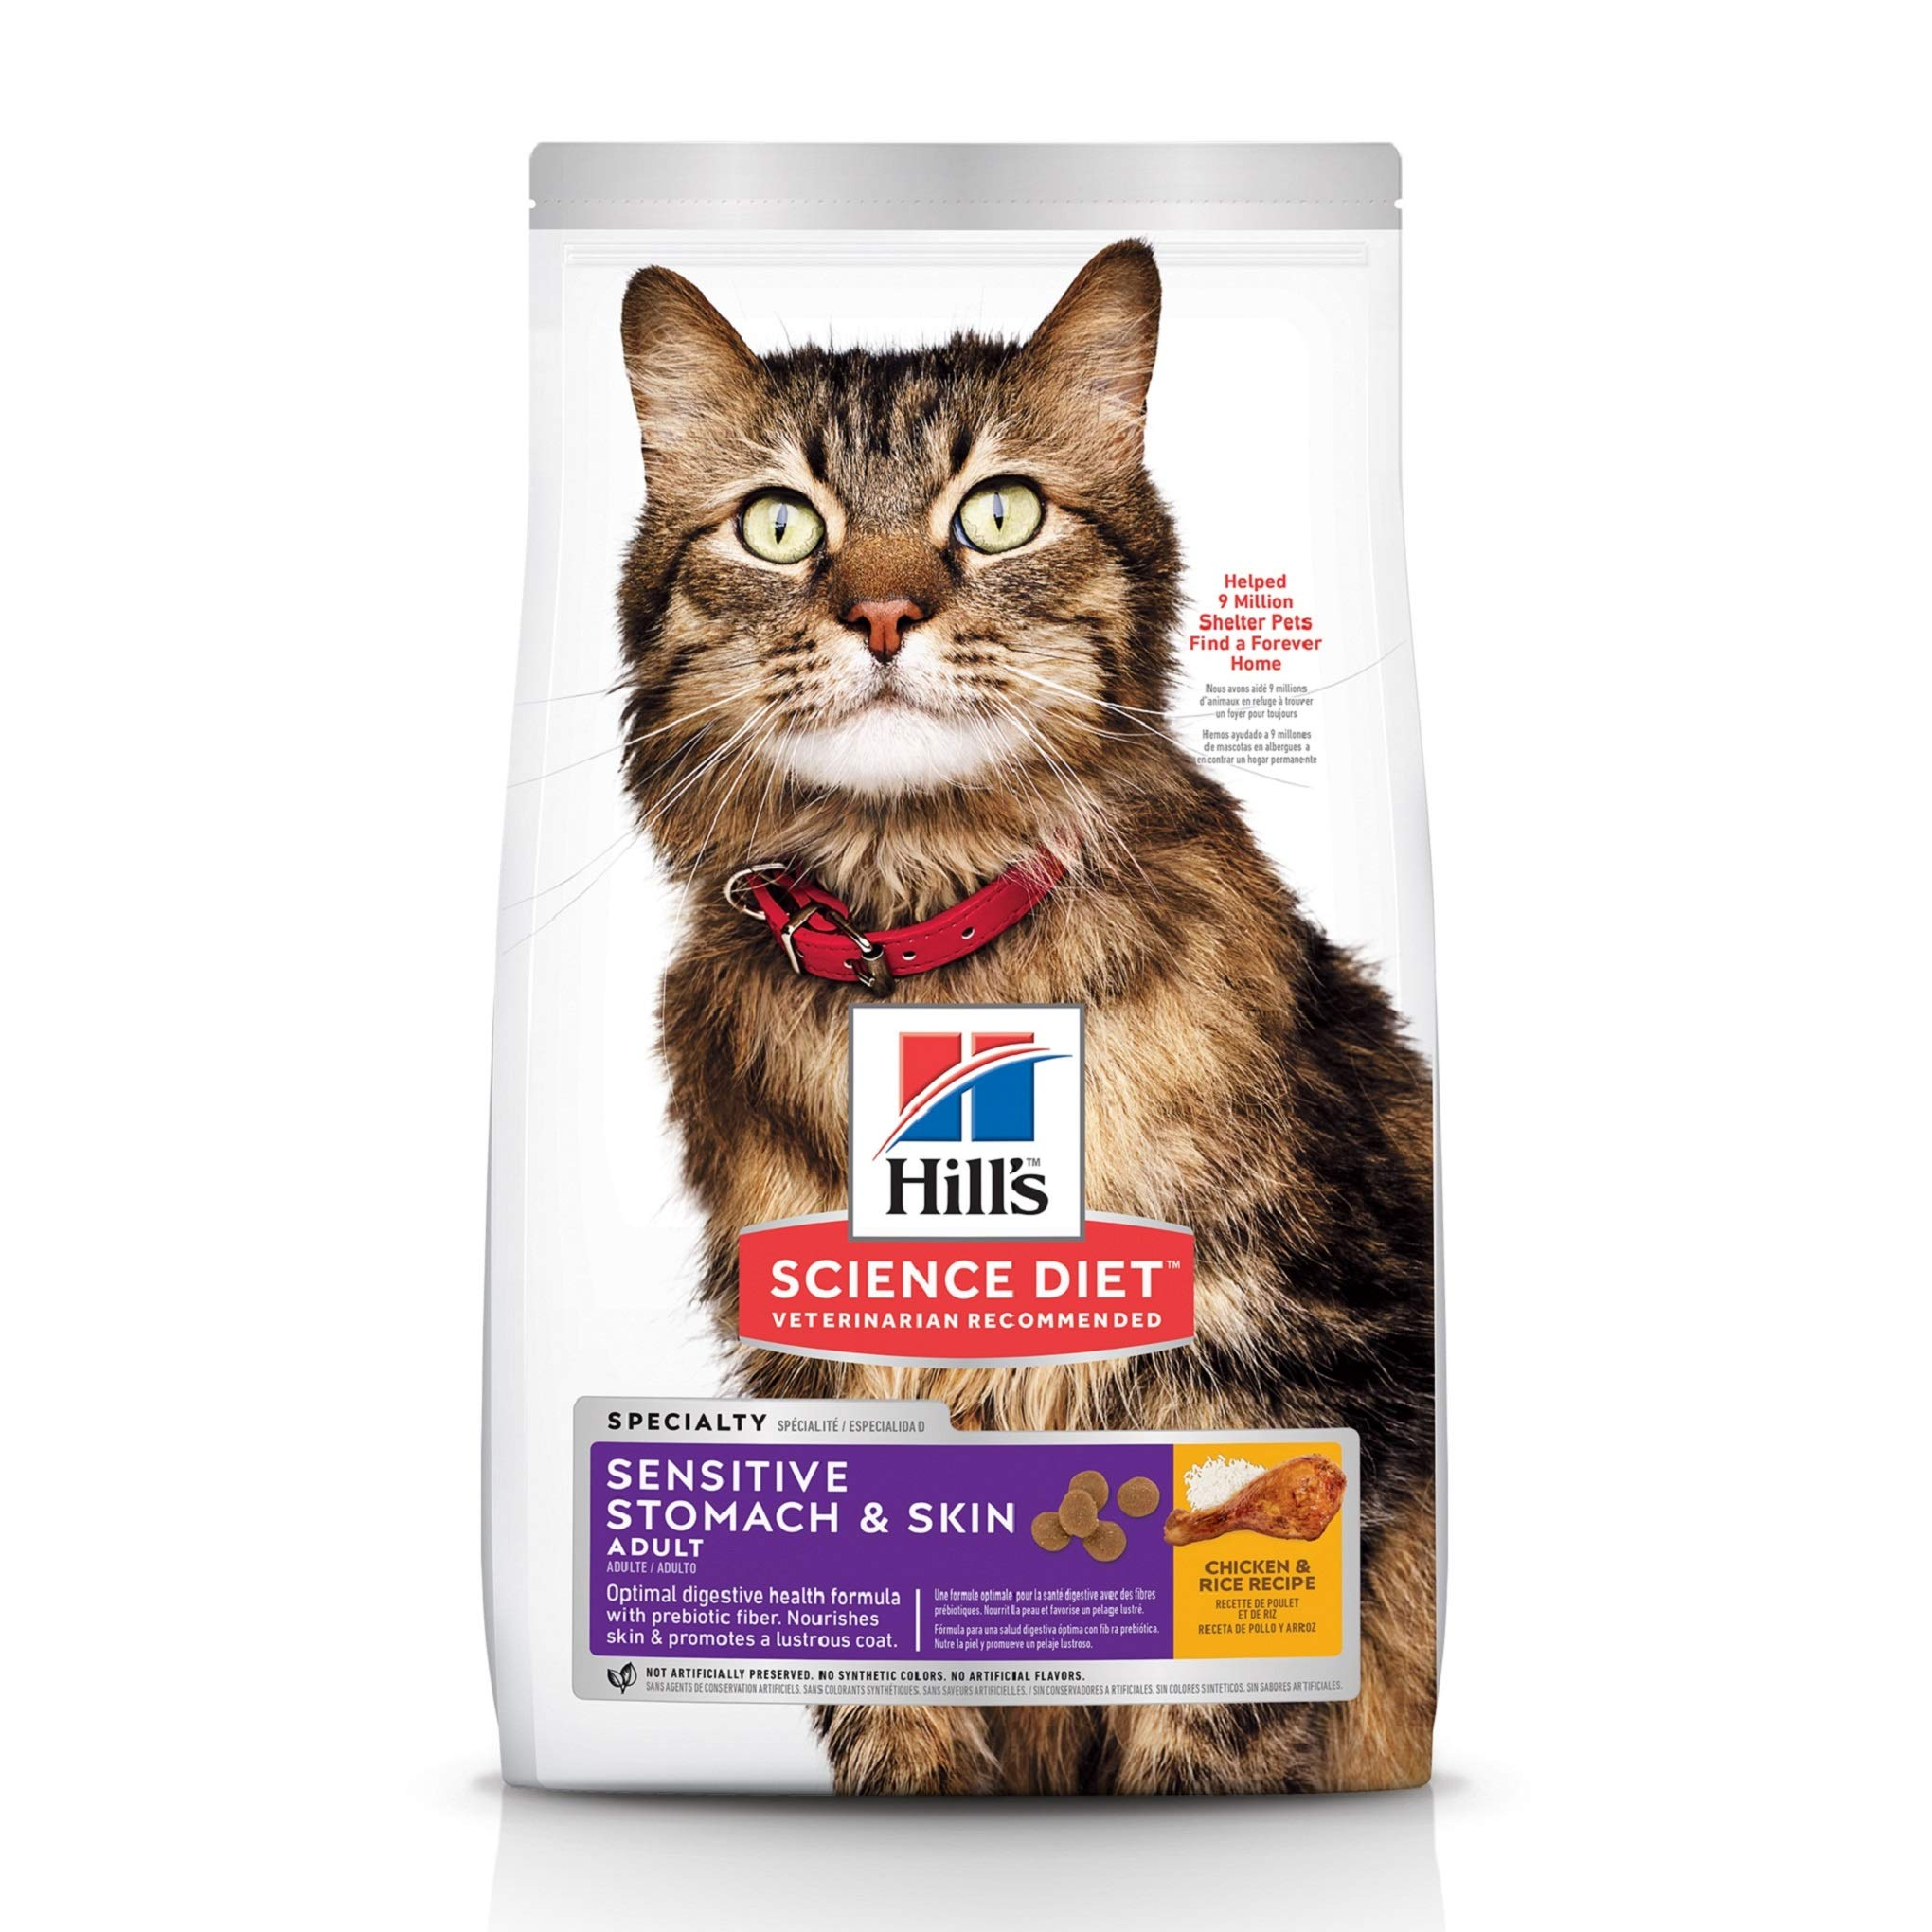 Hill's Science Diet Dry Cat Food, Adult, Sensitive Stomach & Skin, Chicken & Rice Recipe, 7 lb Bag by Hill's Science Diet (Image #1)